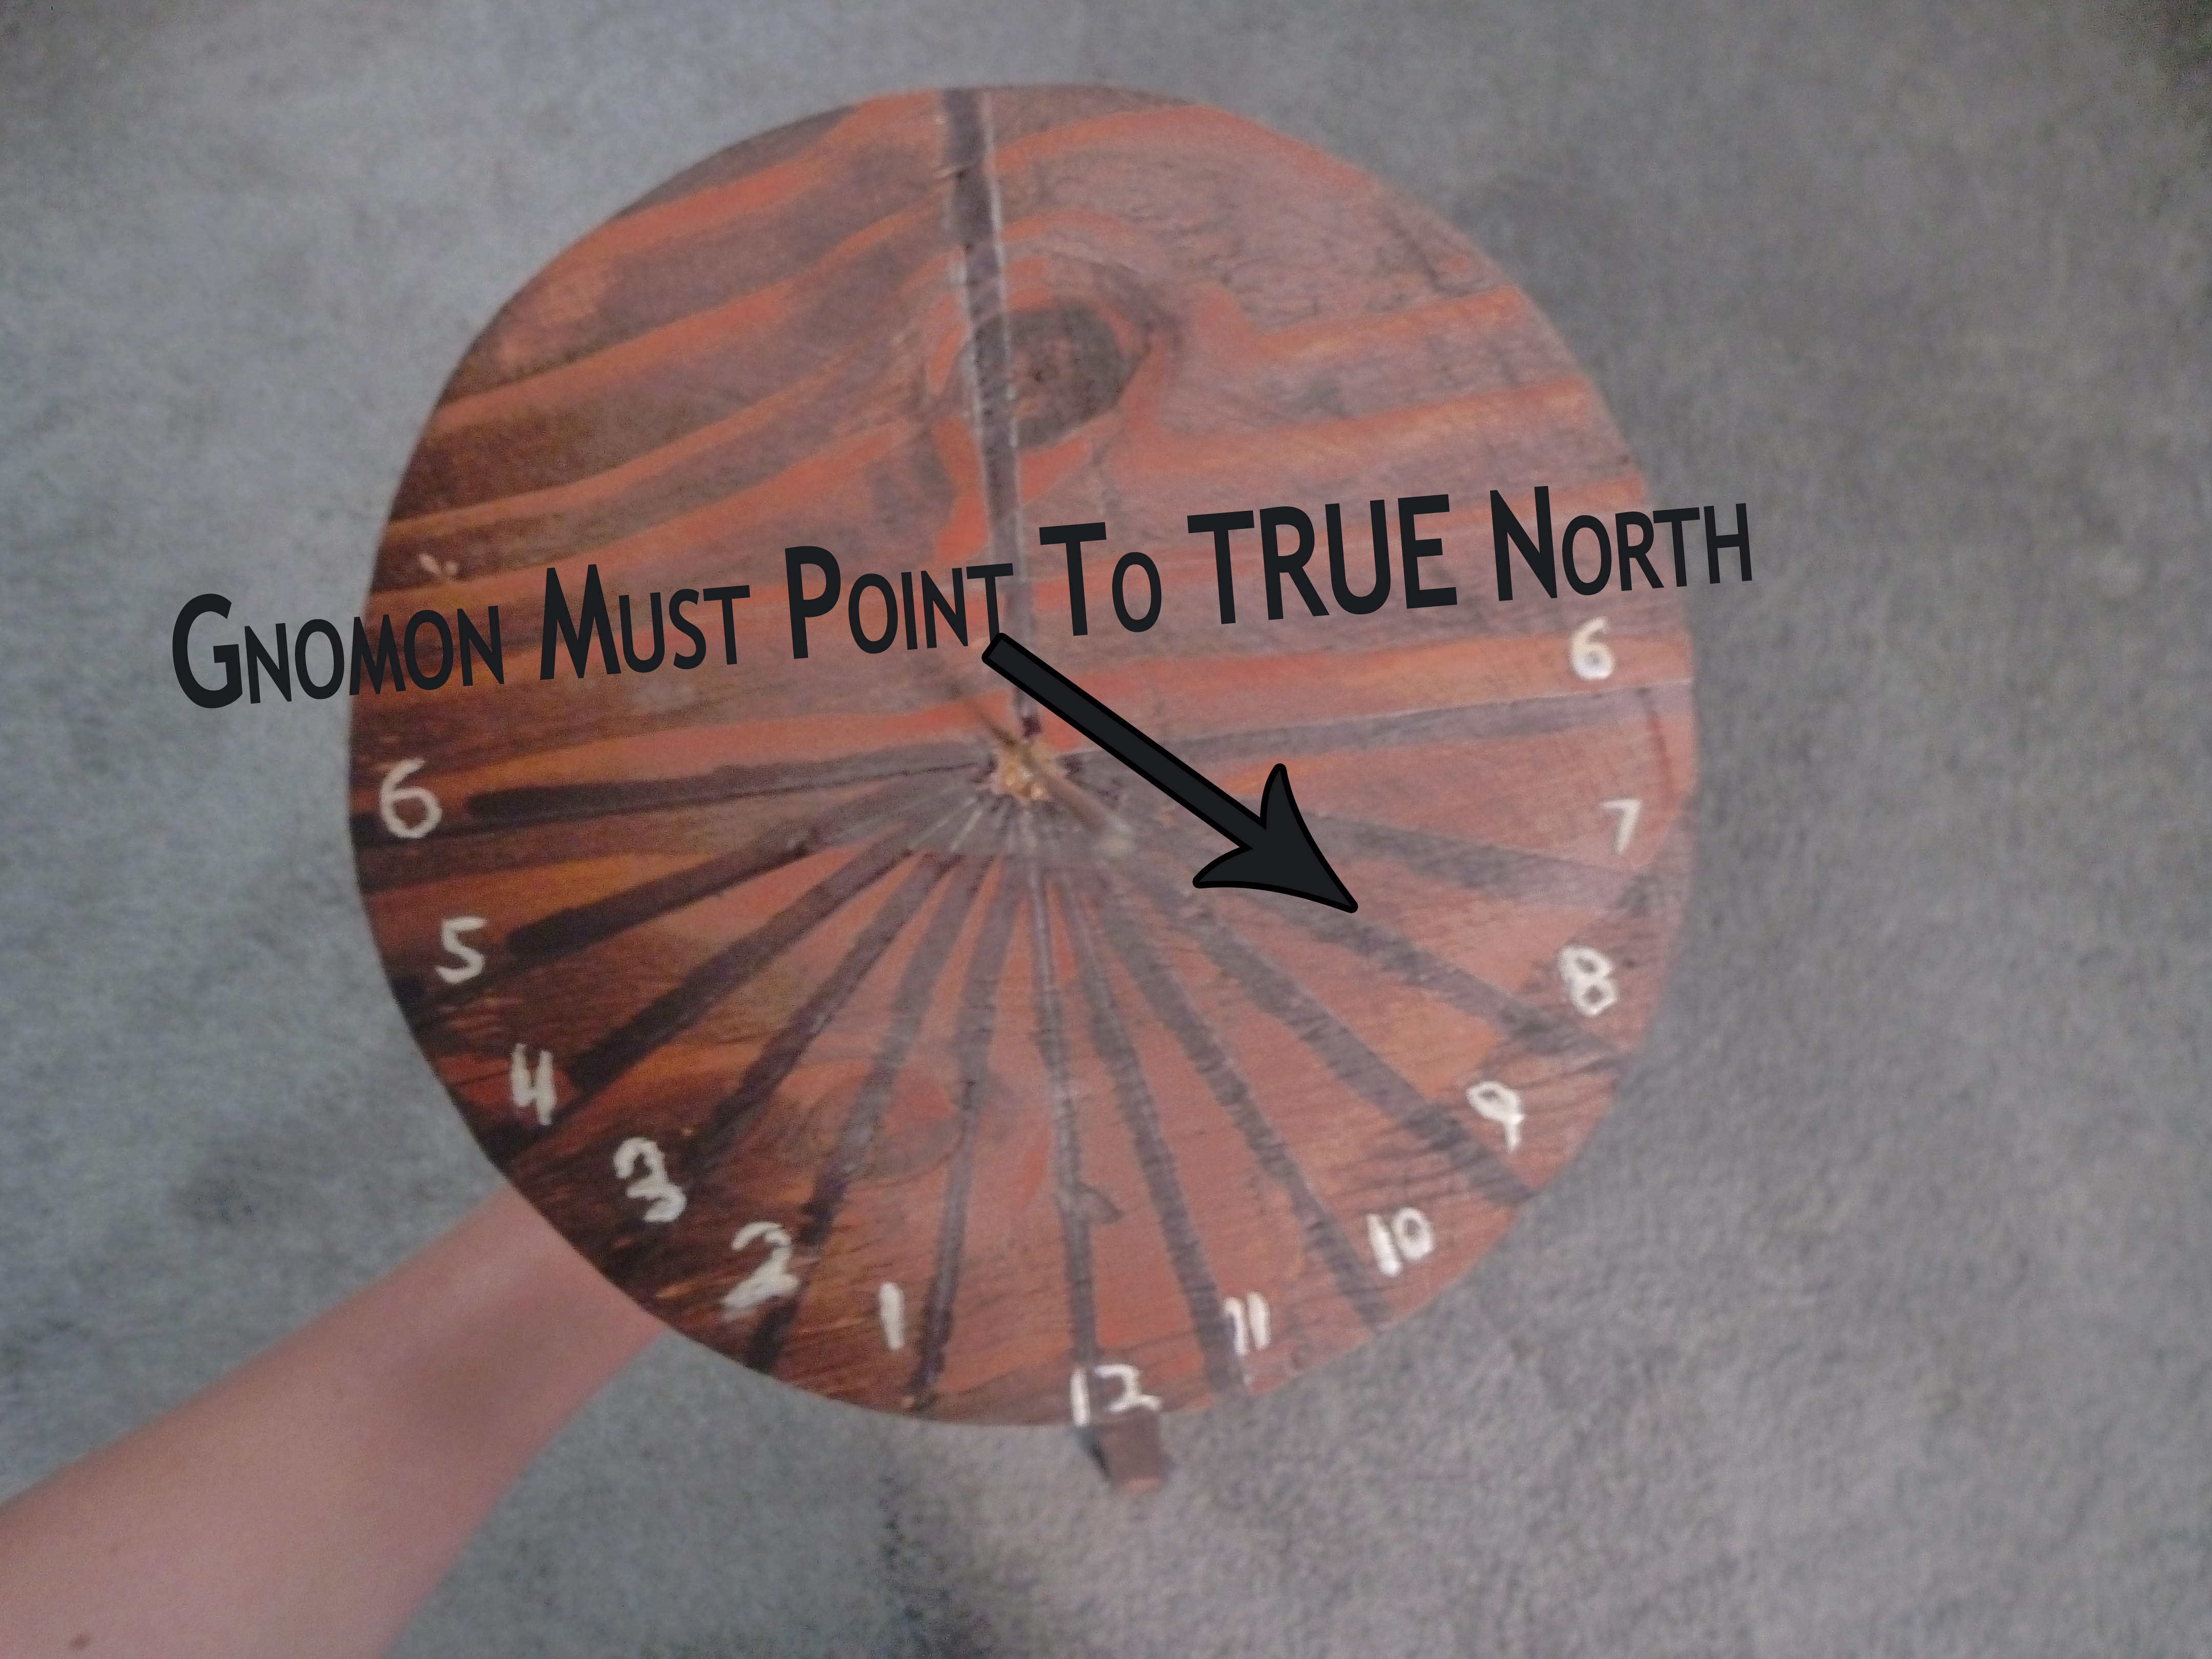 Picture of Place Sundial